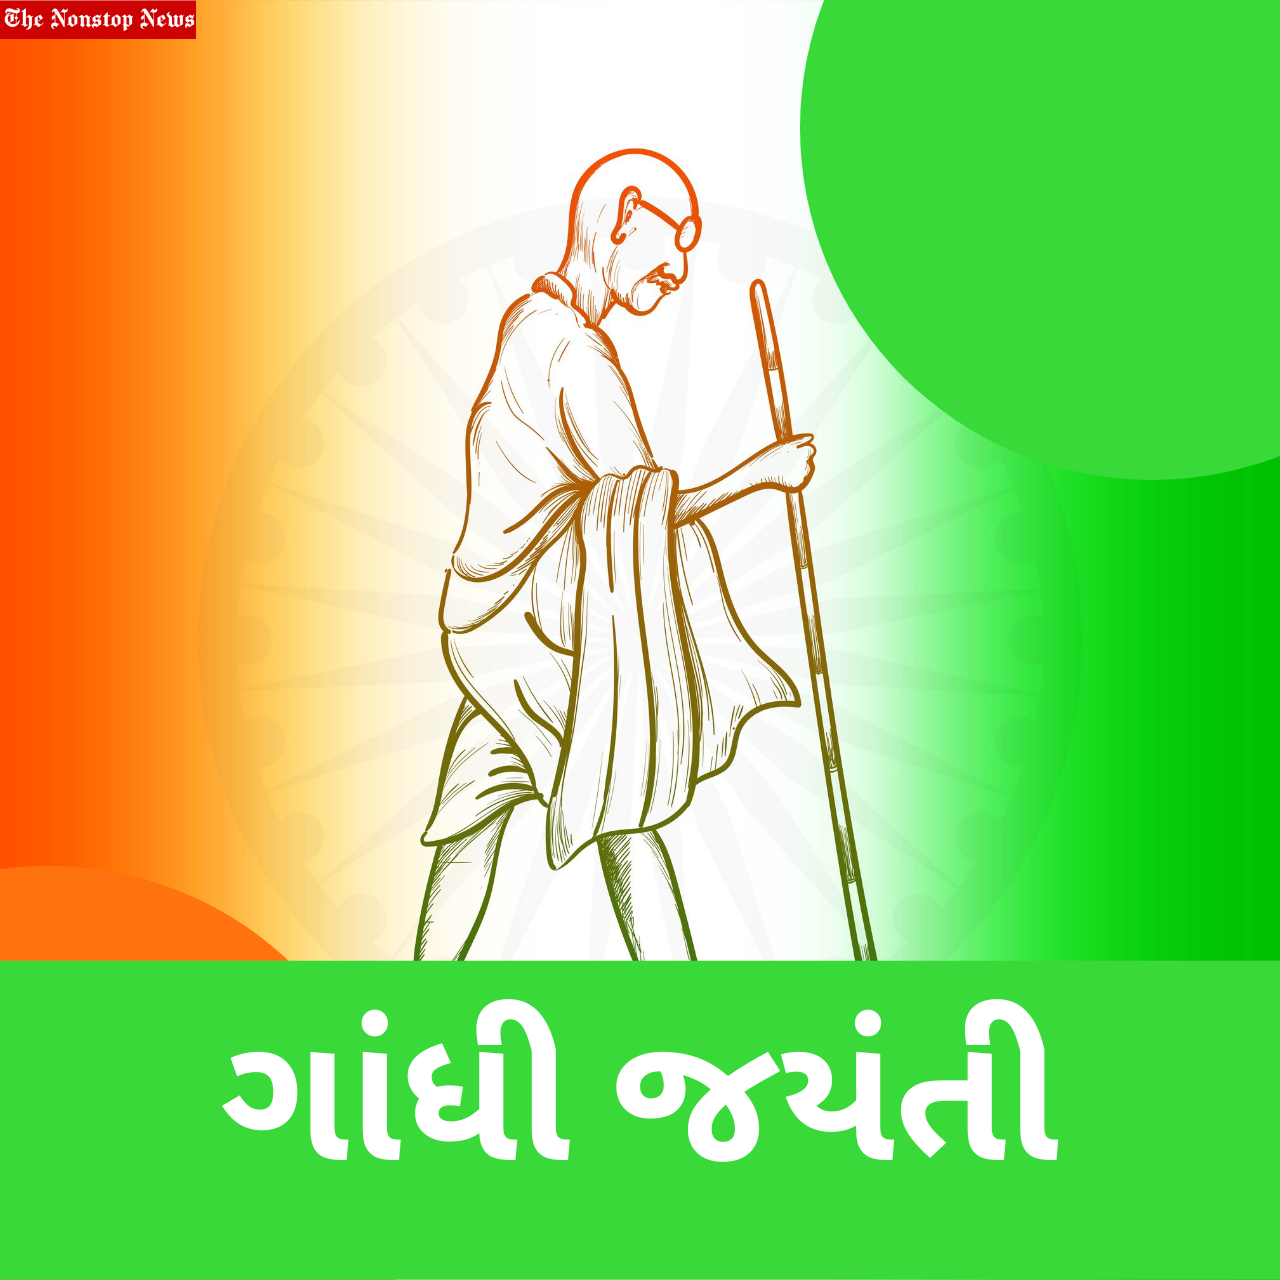 Gandhi Jayanti 2021 Gujarati Wishes, Quotes, Messages, Wishes, Greetings, and HD Images to share